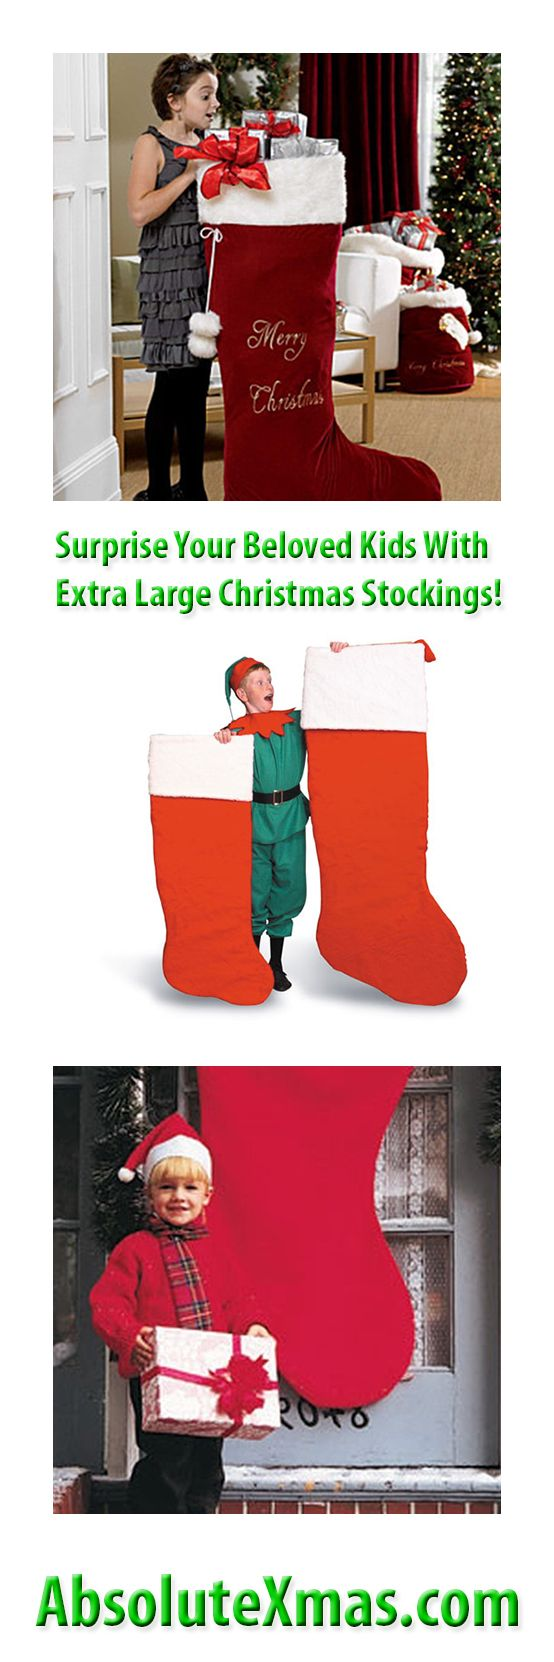 Surprise Your Beloved Kids With Extra Large Christmas Stockings! To Learn More About Where To Buy Extra Large Christmas Stockings, Visit My Site ➔ http://www.absolutexmas.com/extra-large-christmas-stockings/ #absolutexmas